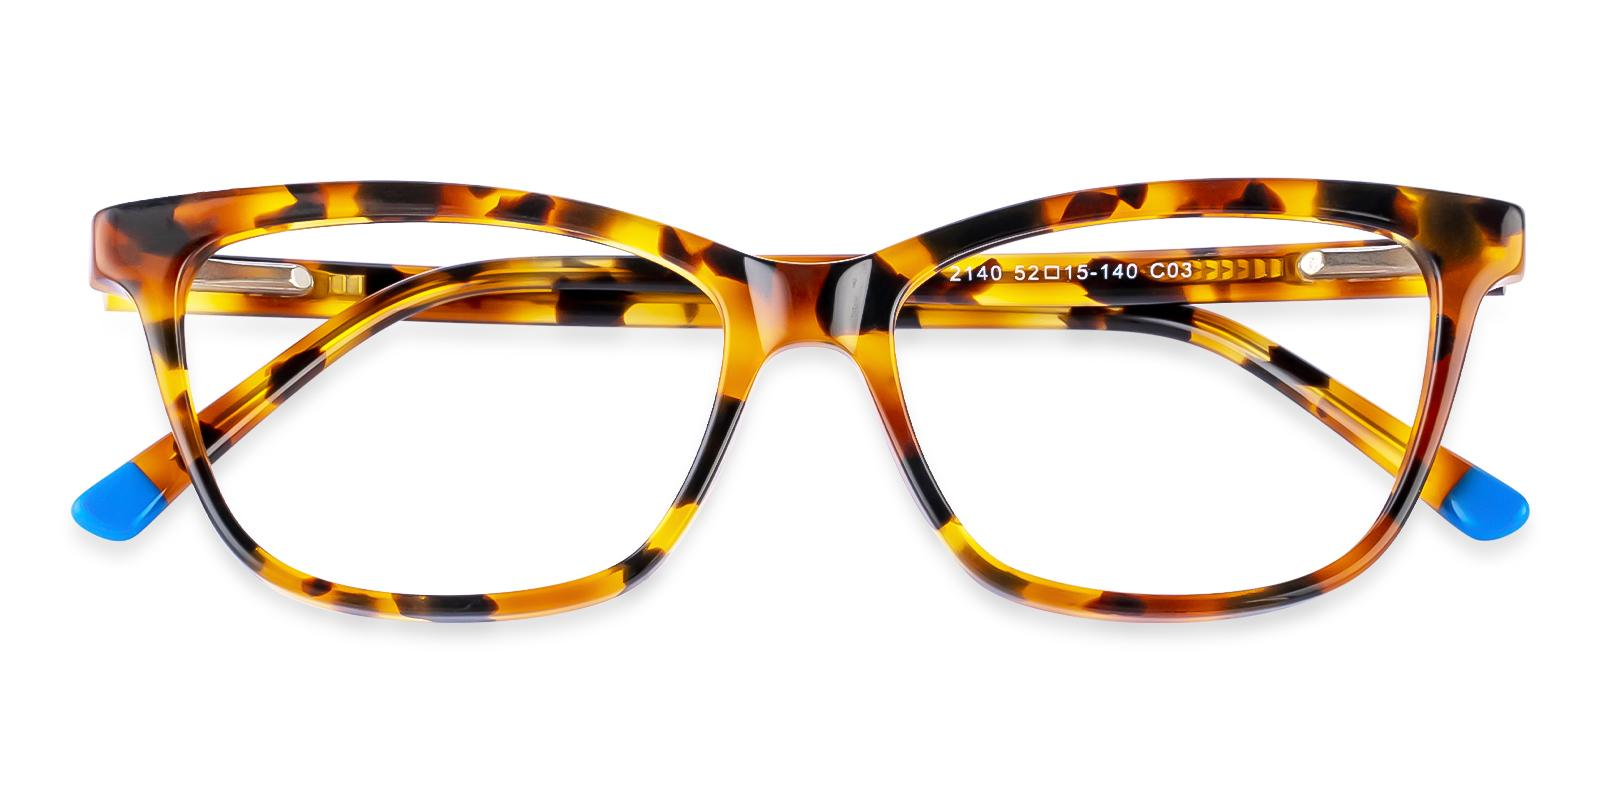 Zion Leopard Acetate Eyeglasses , SpringHinges , UniversalBridgeFit Frames from ABBE Glasses